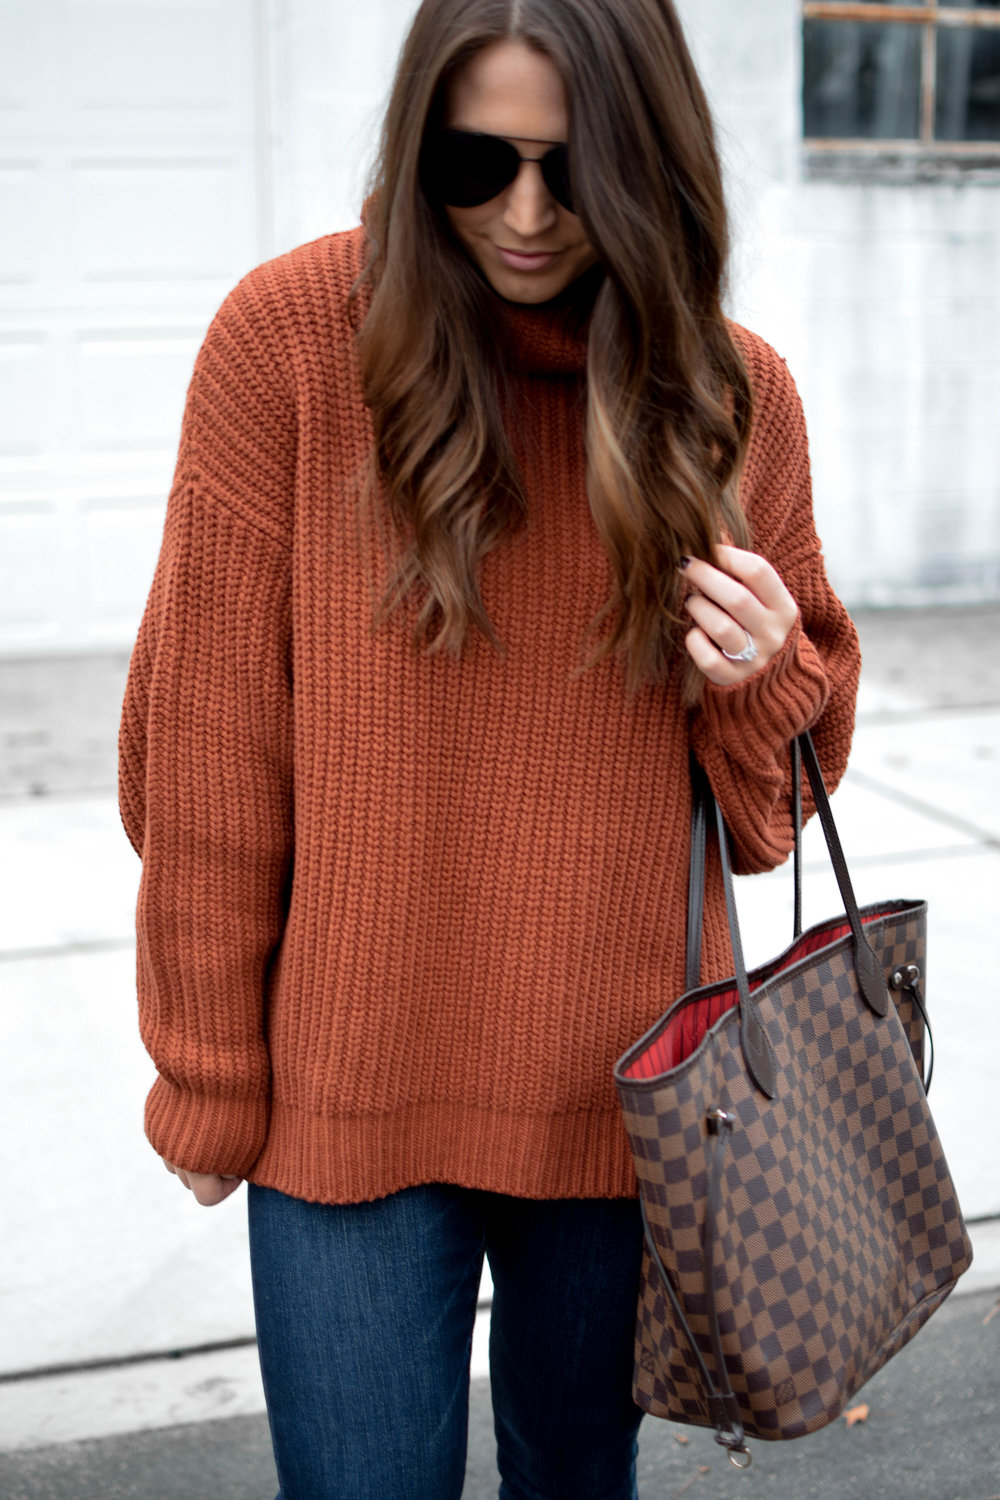 Styling Burnt Orange For Fall | Pine Barren Beauty